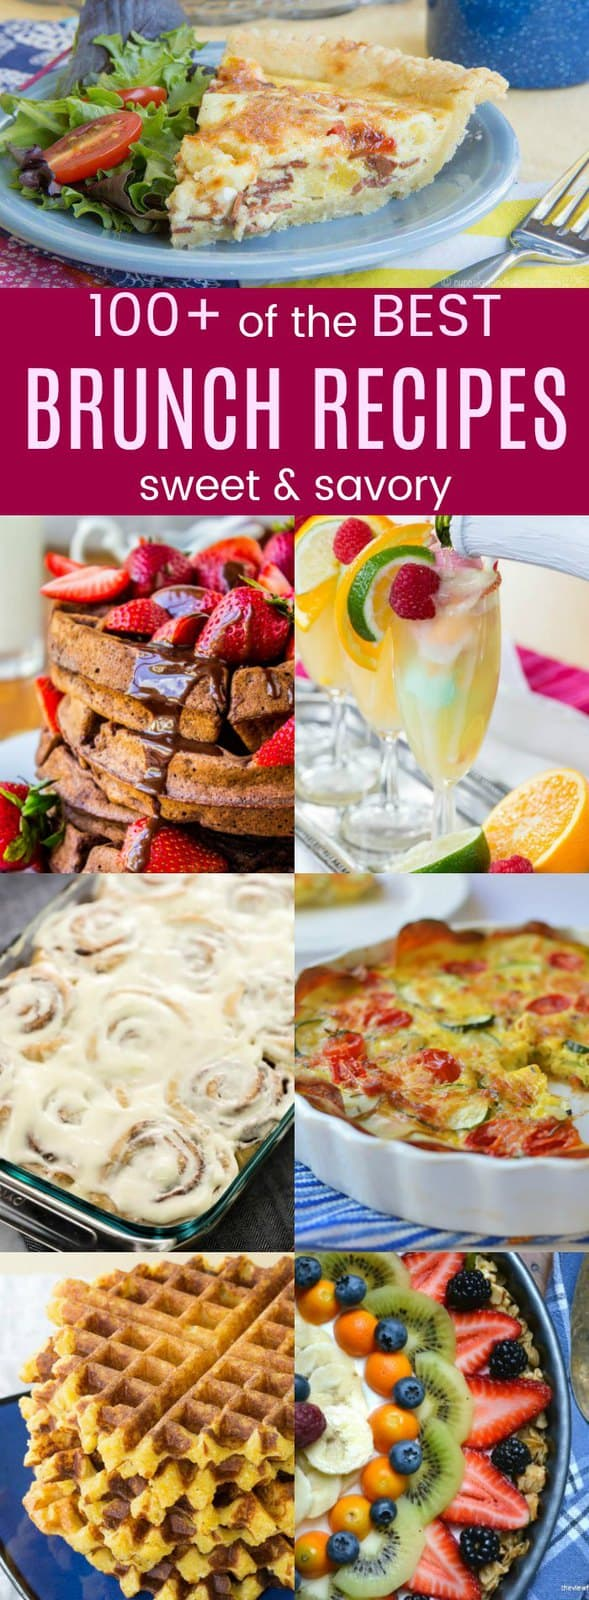 Over 100 of the Best Brunch Recipes with sweet and savory dishes, including pancakes, waffles, muffins, scones, eggs, casseroles, cinnamon rolls, and more. #cupcakesandkalechips #brunch #brunchrecipes #breakfast #easter #easterbrunch